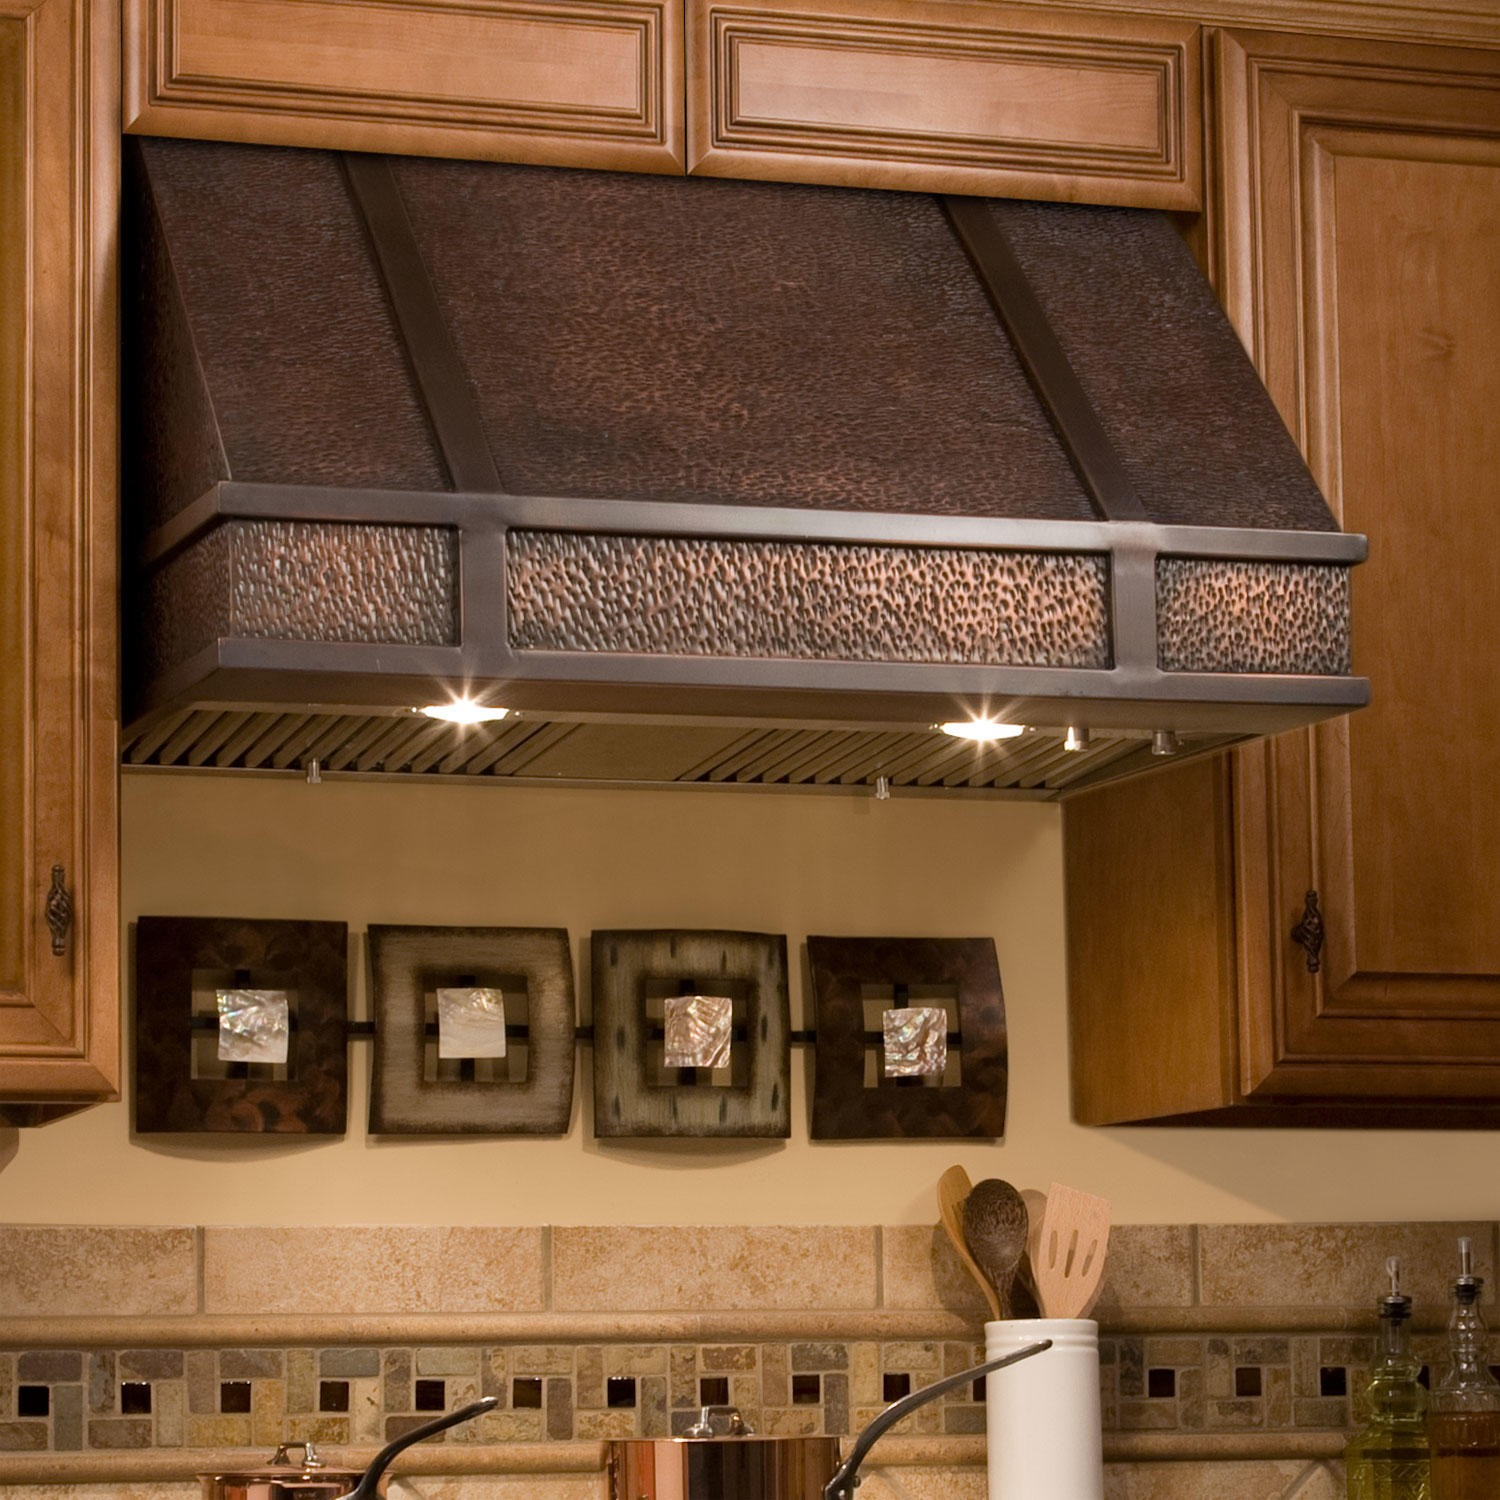 distressed metal copper stove hood installed on a wall of kitchen